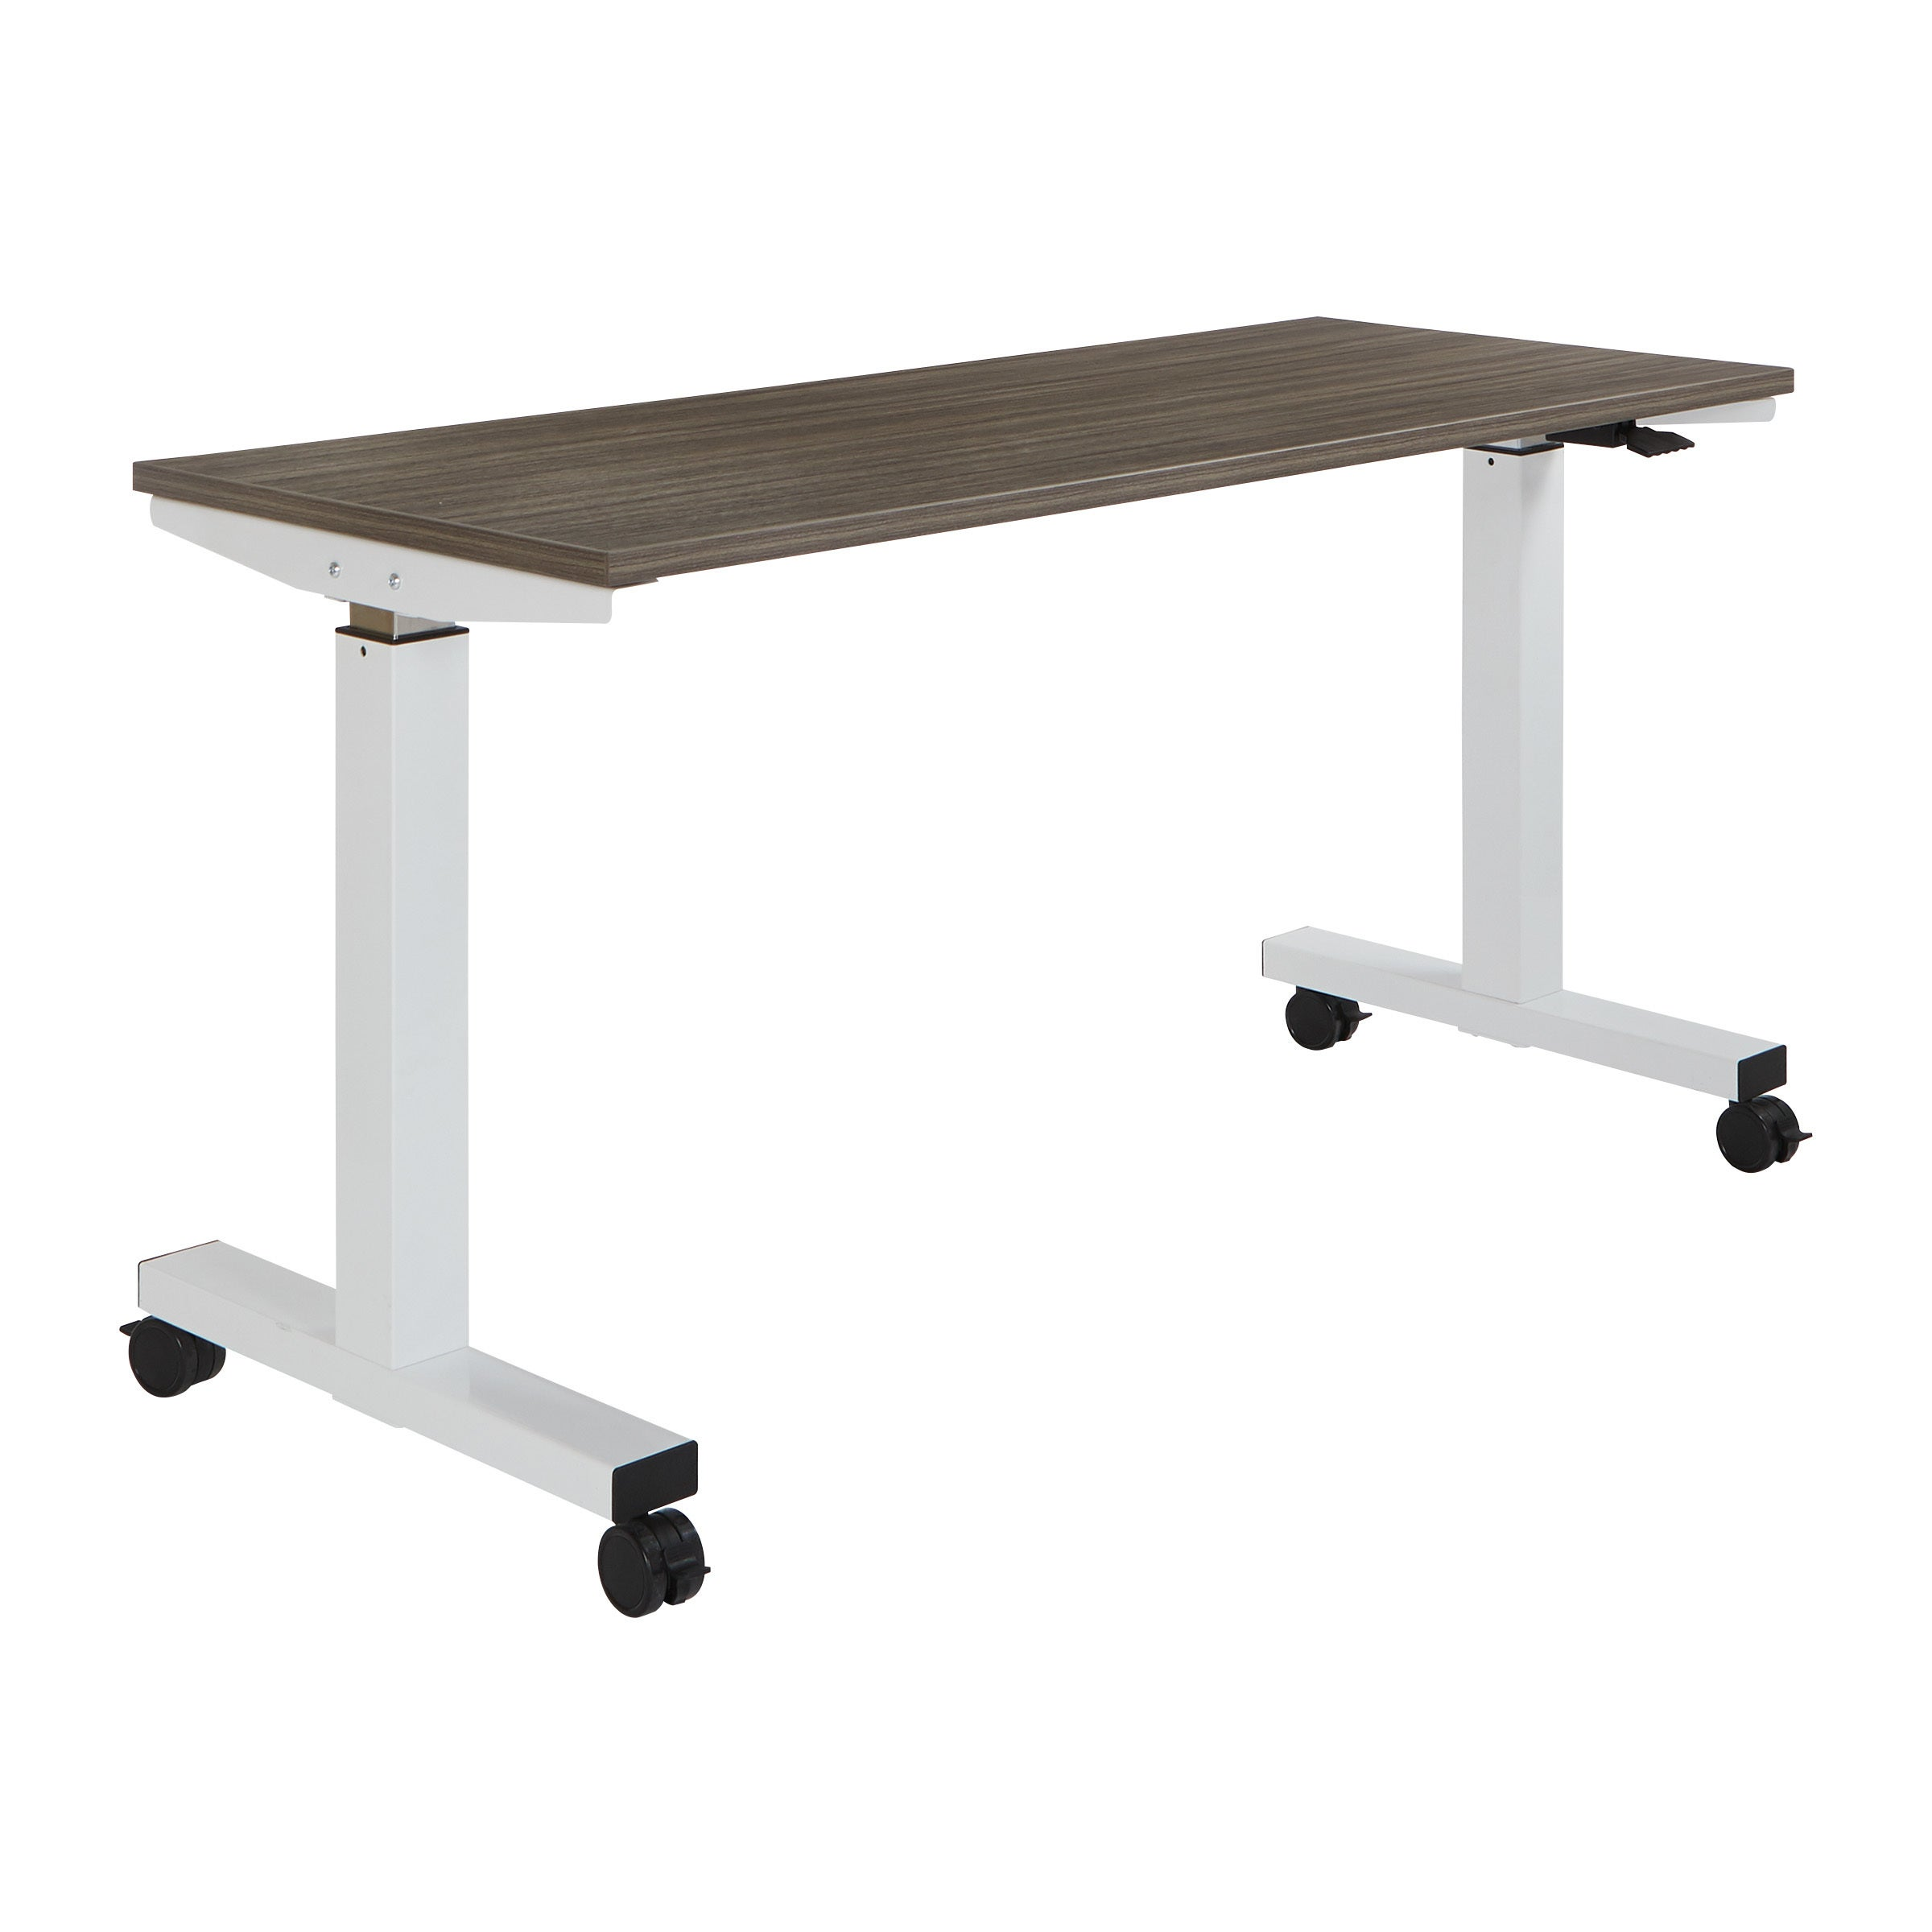 Wide Pneumatic Height Adjustable White Steel Frame Table With Locking Black  Casters And Laminate Top   On Sale   Free Shipping Today   Overstock.com    ...